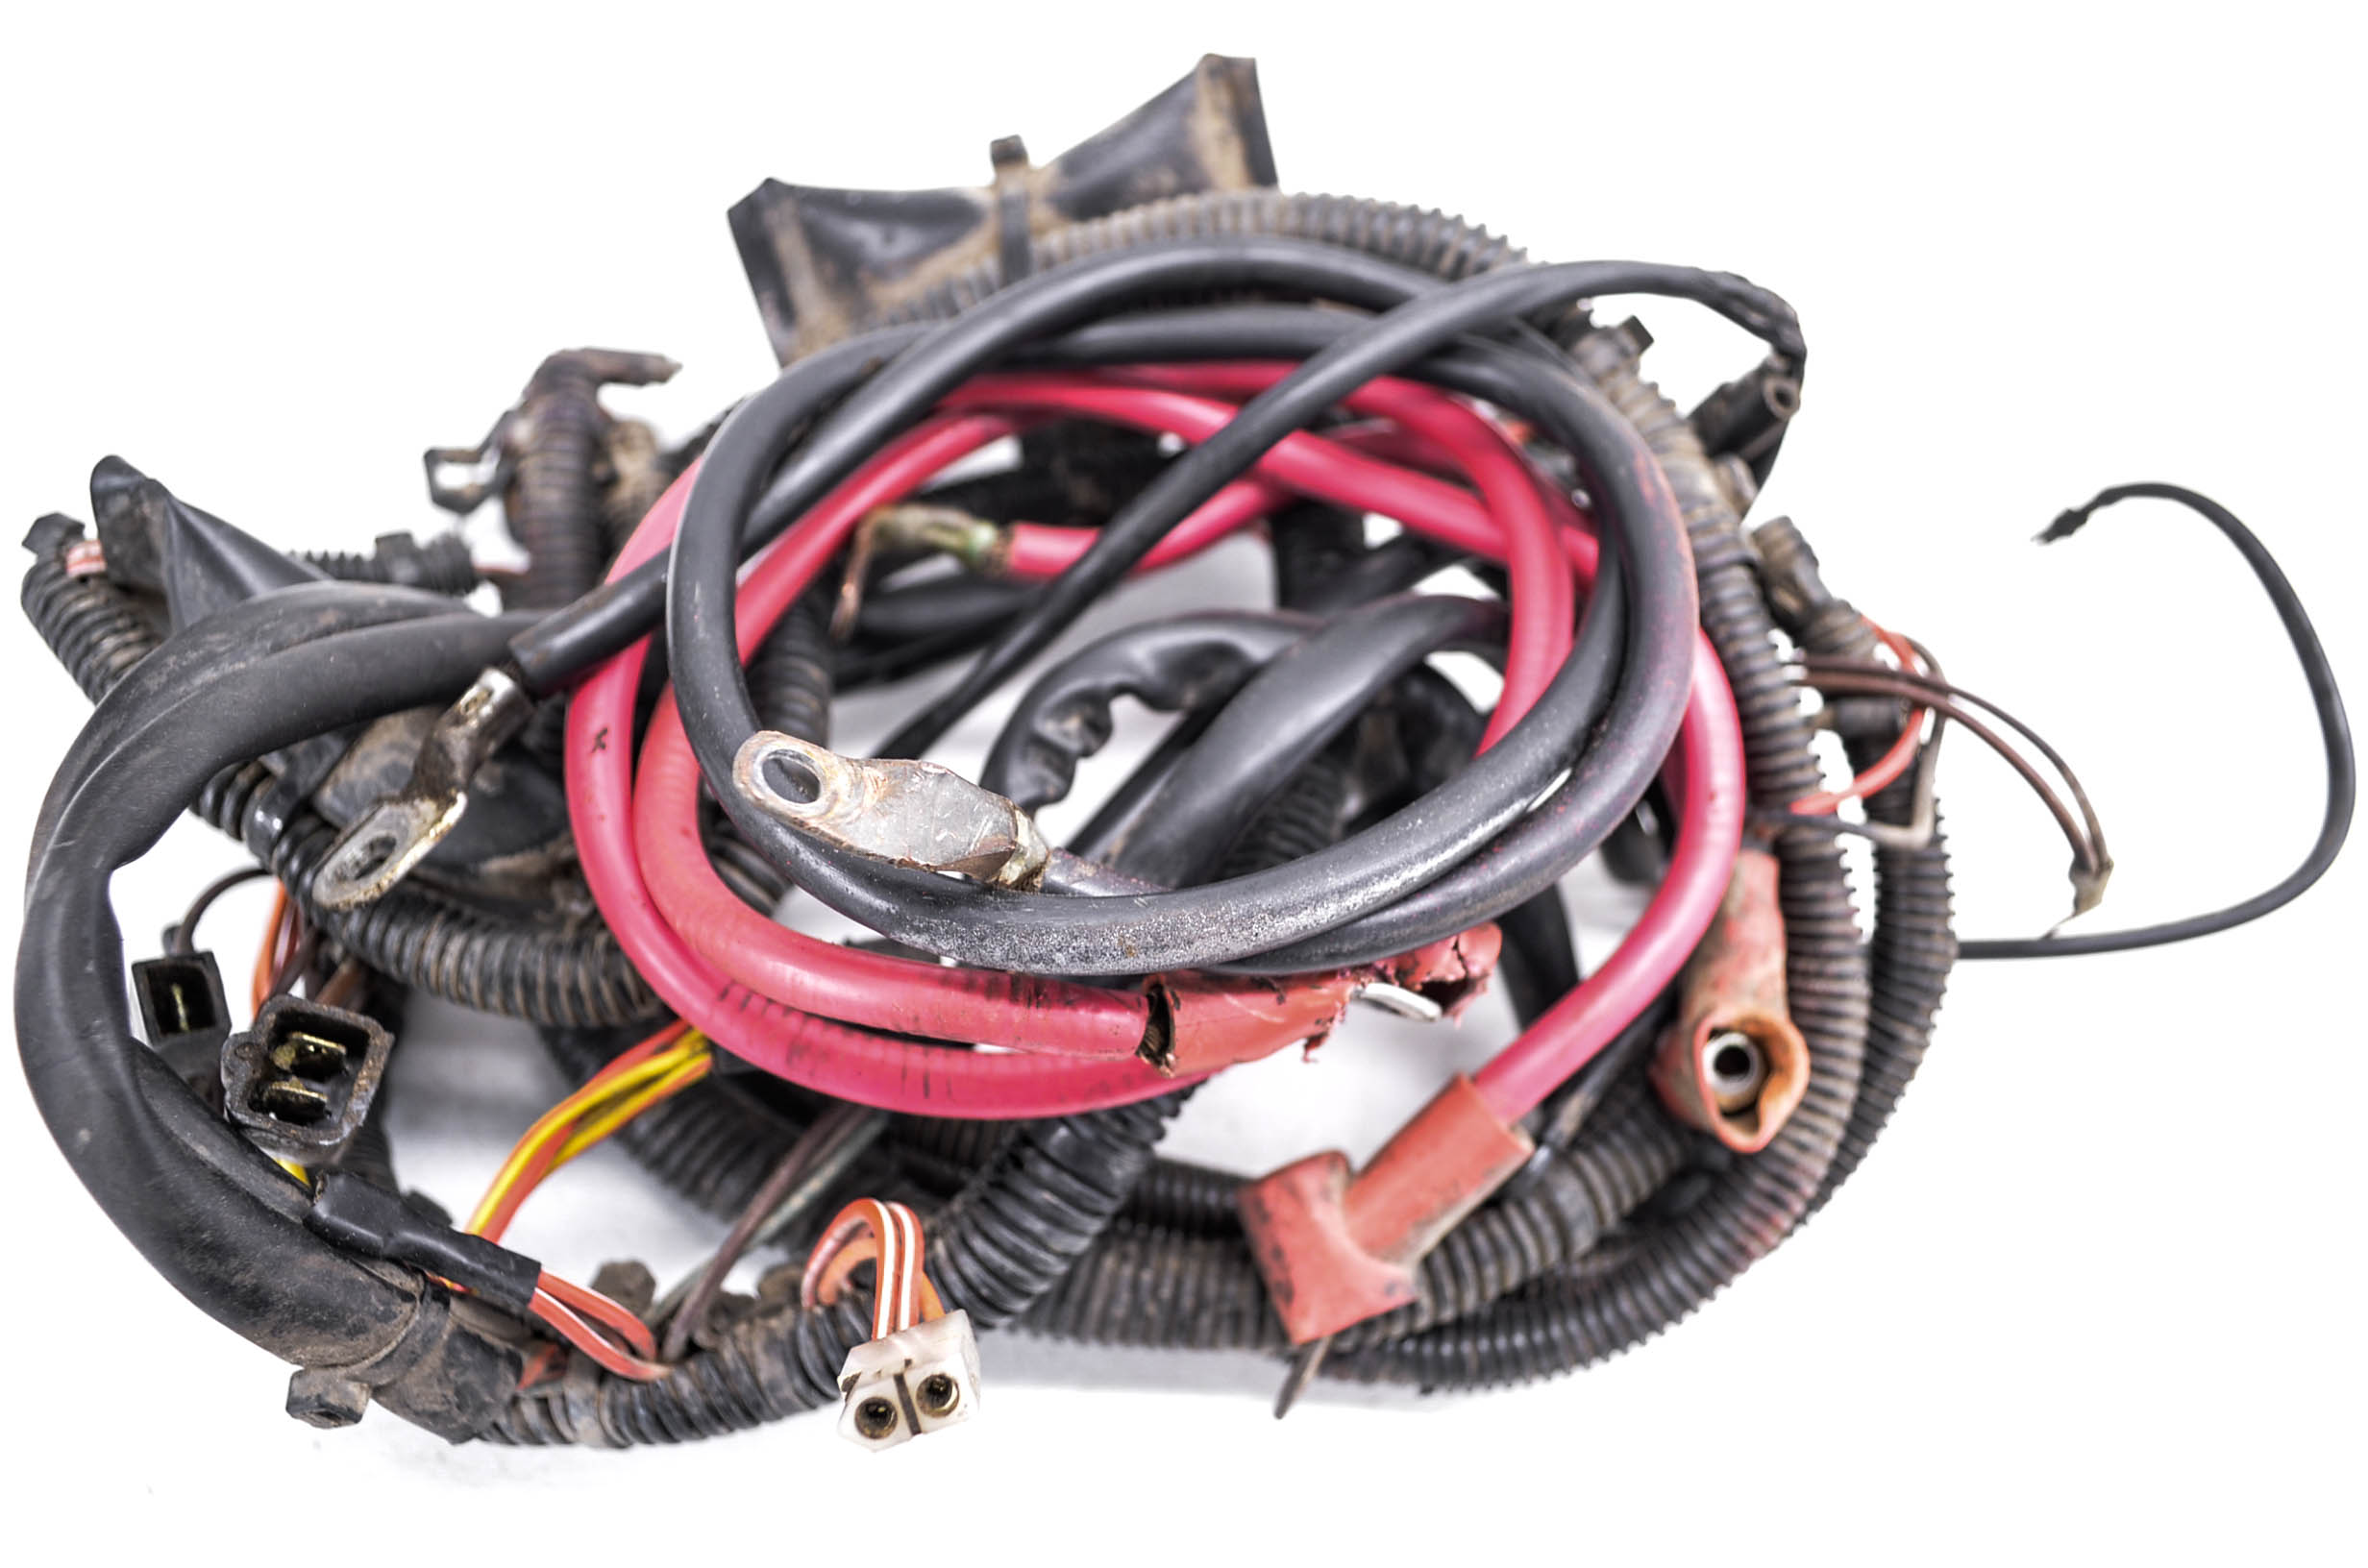 03 Polaris Trail Blazer 400 2x4 Wire Harness Electrical Wiring